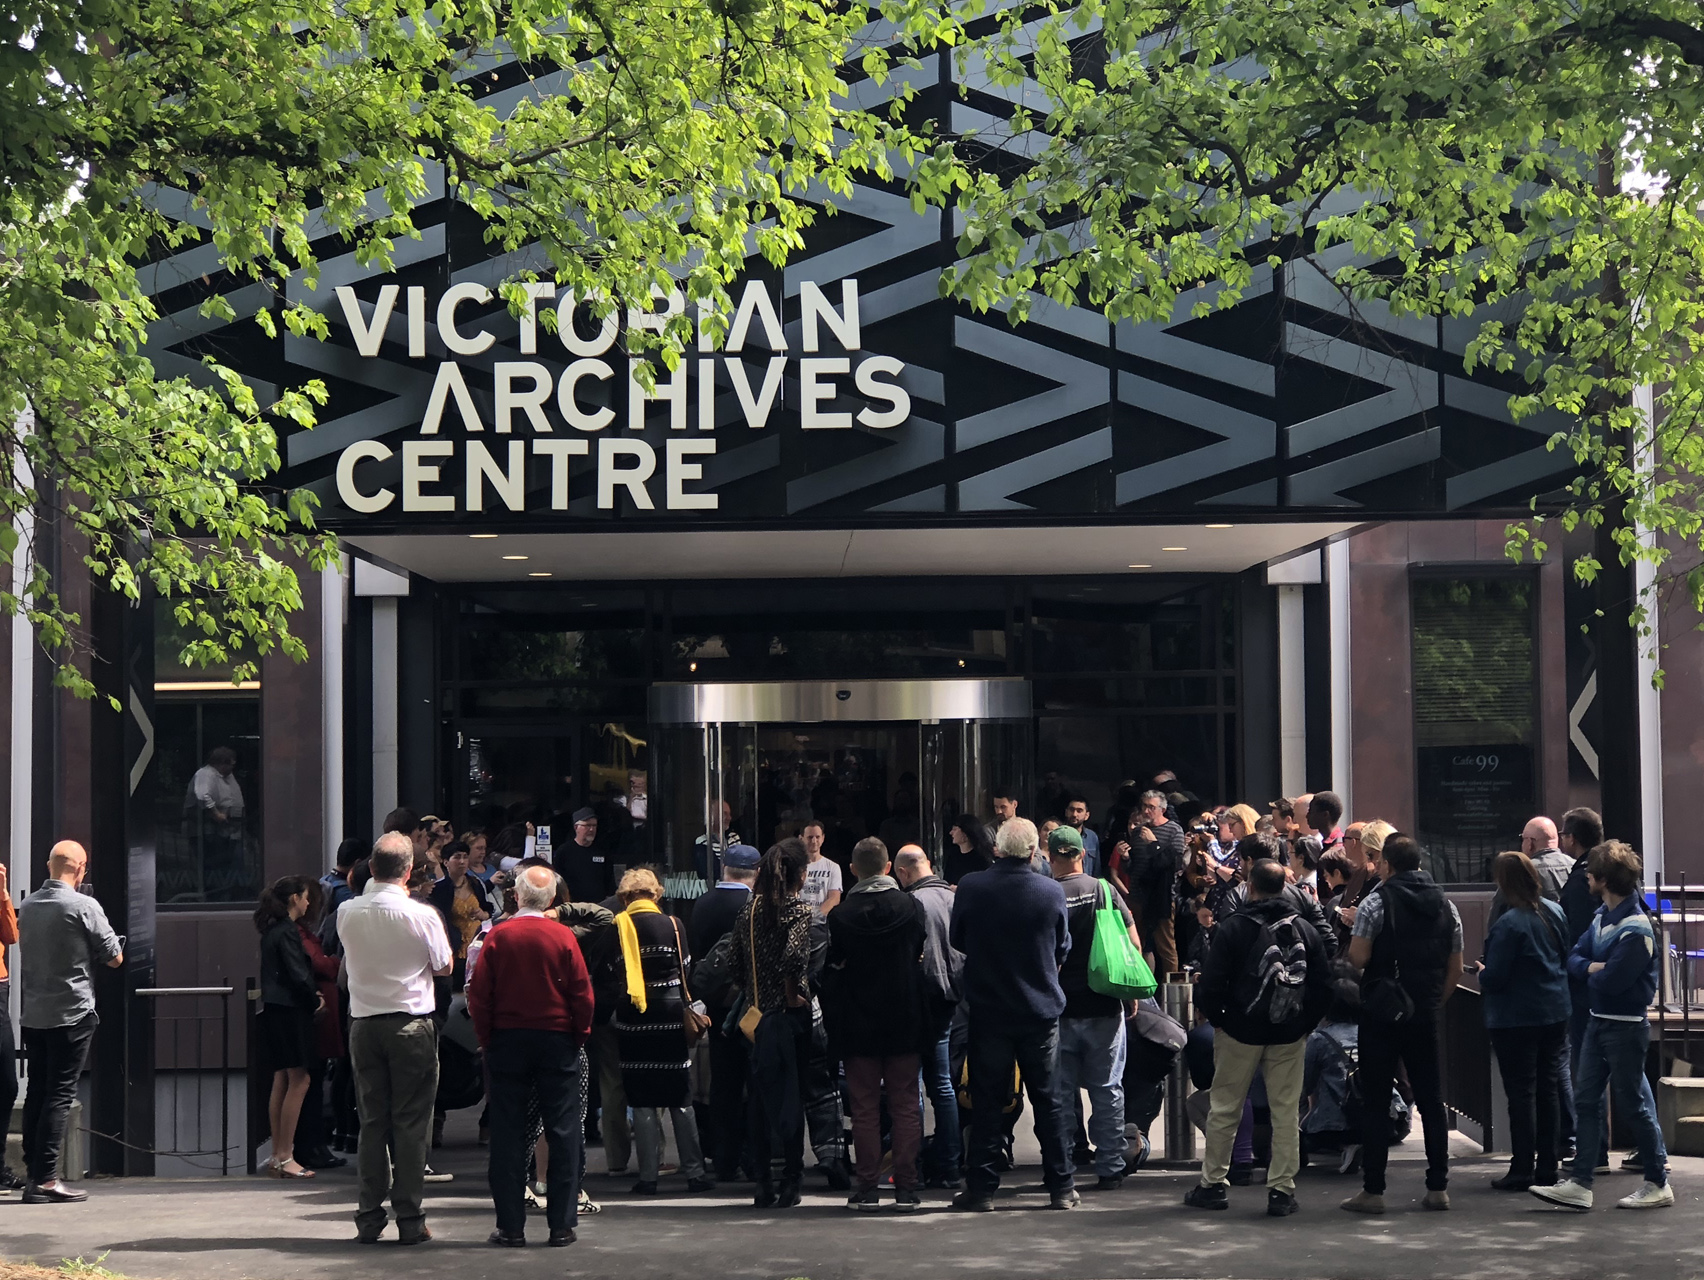 photo of the victorian archives centre building with a crowd standing outside